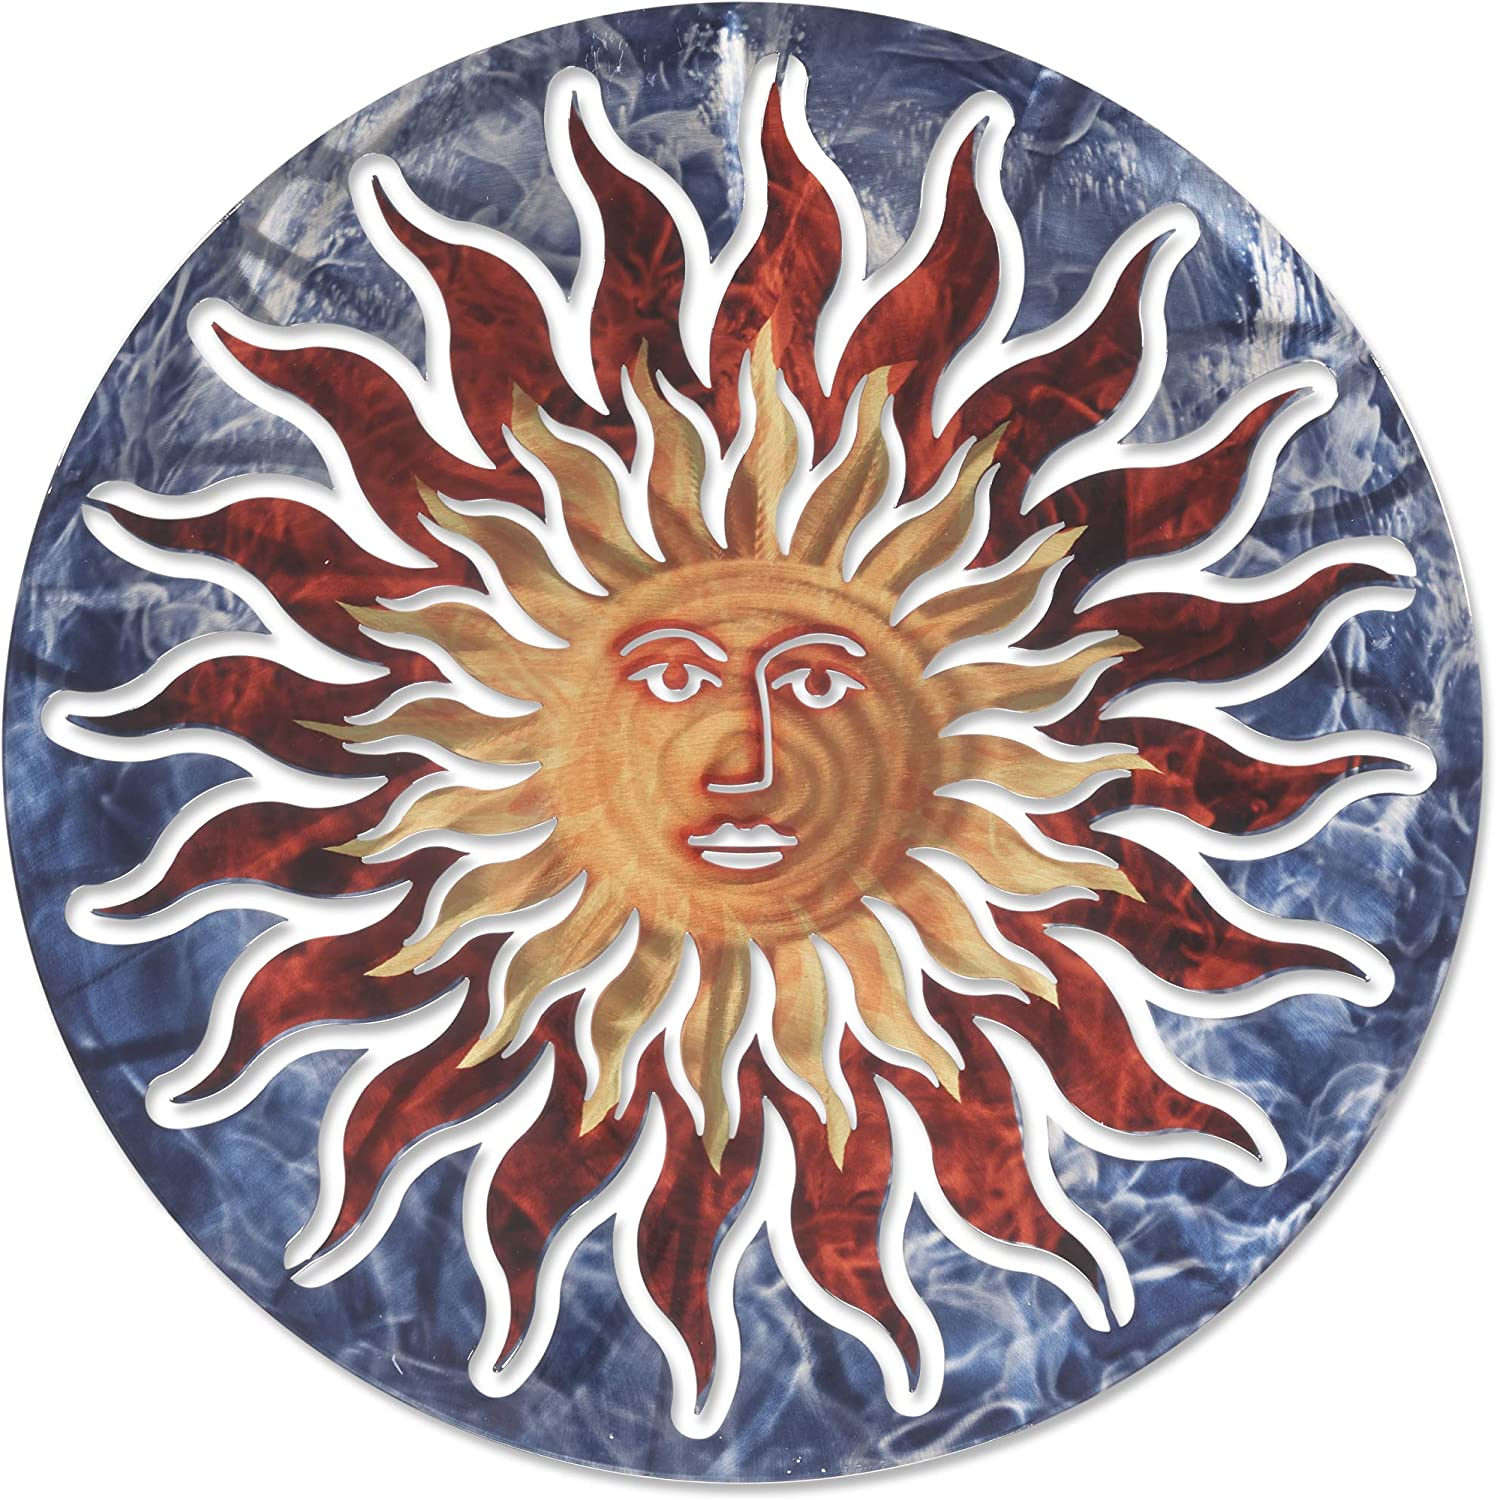 3D Metal Wall Art - Smiling Sun Wall Decor - Handmade in the USA for Use Indoors or Outdoors - Blue Red and Yellow